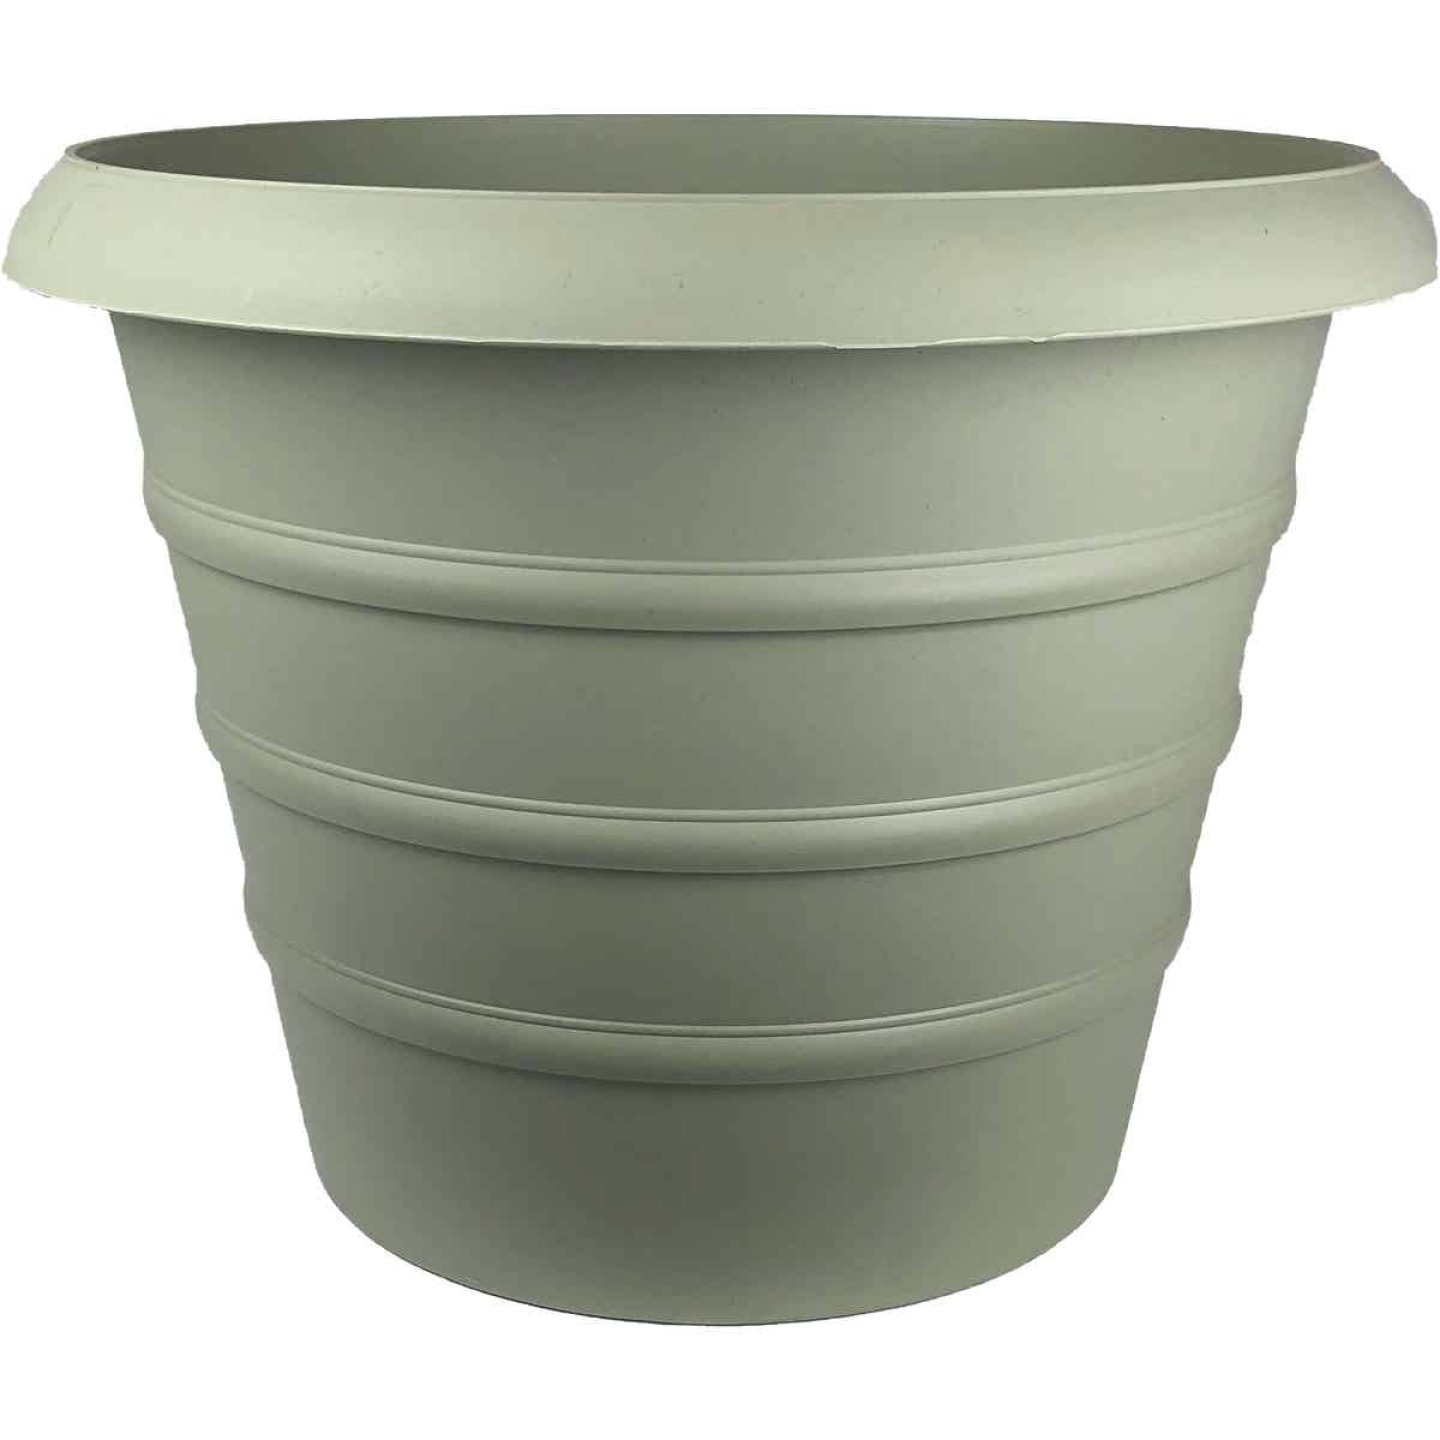 Myers Marina 12 In. Dia. Seafoam Poly Planter Image 1